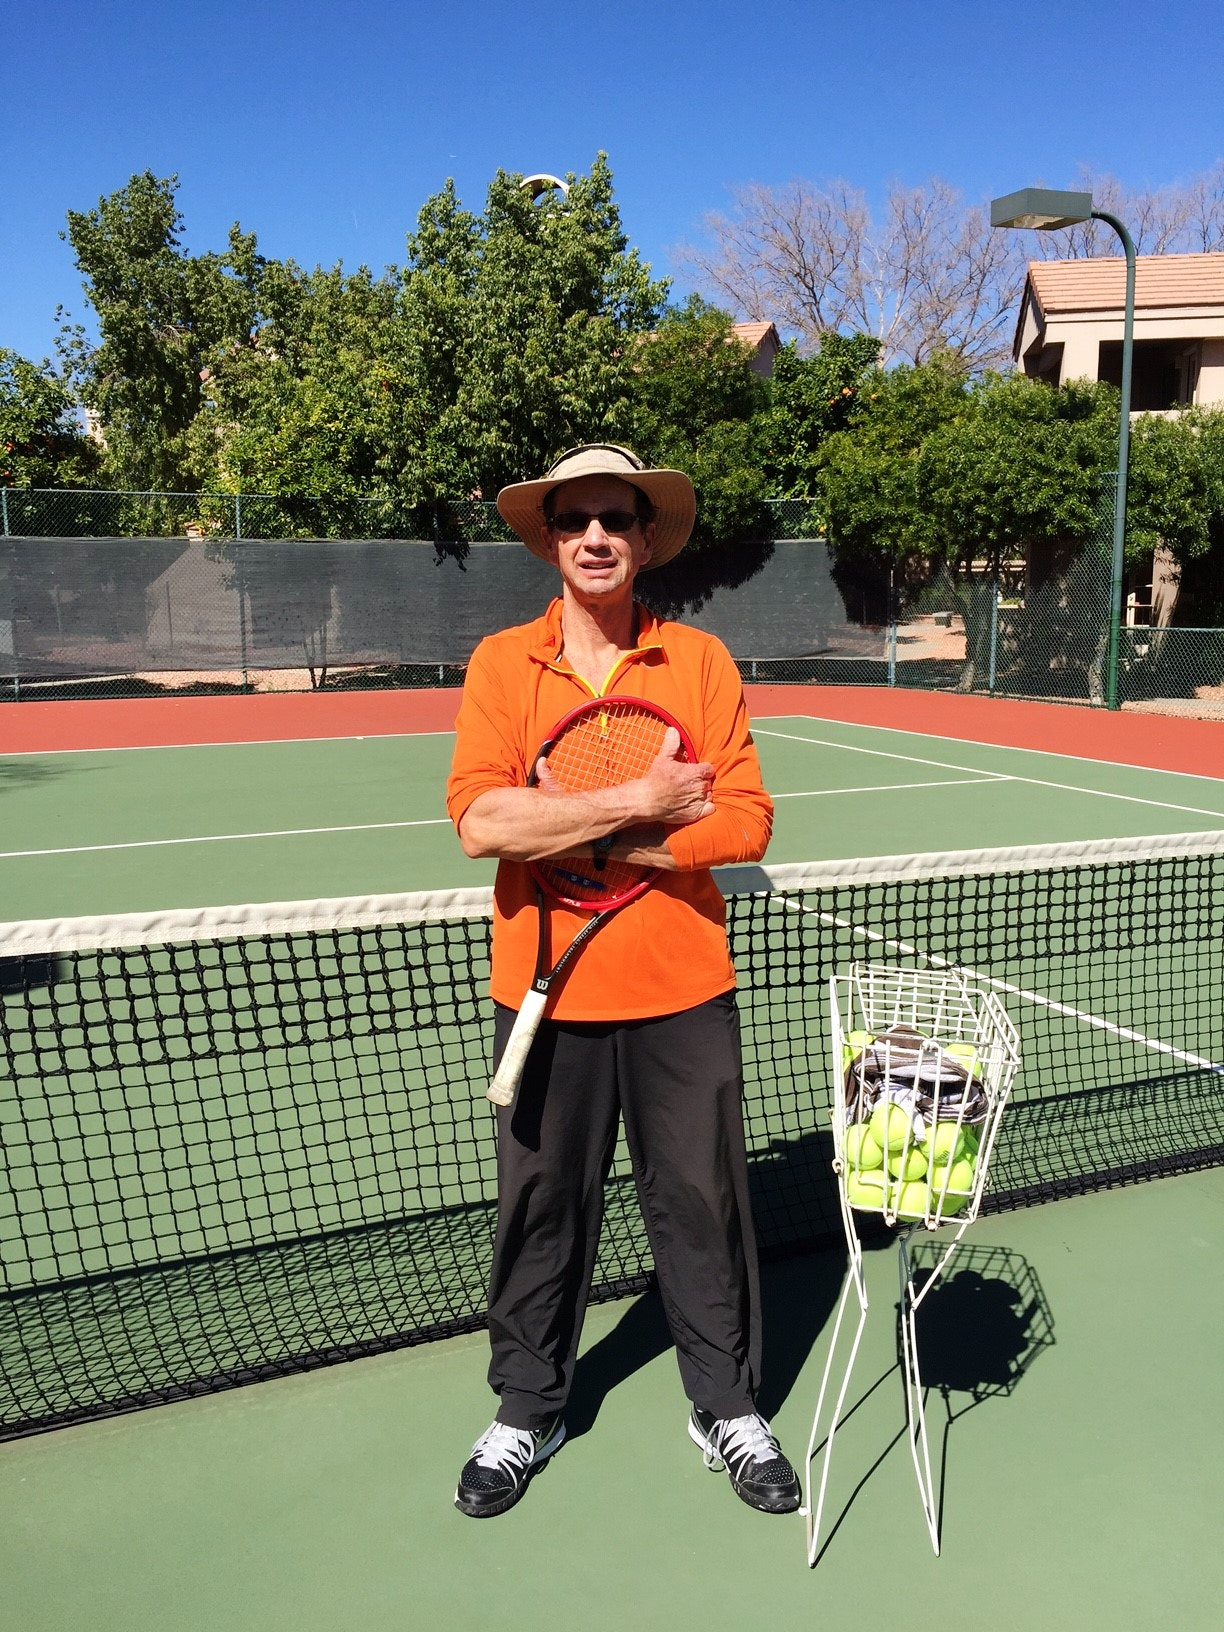 Thomas K. teaches tennis lessons in Scottsdale, AZ